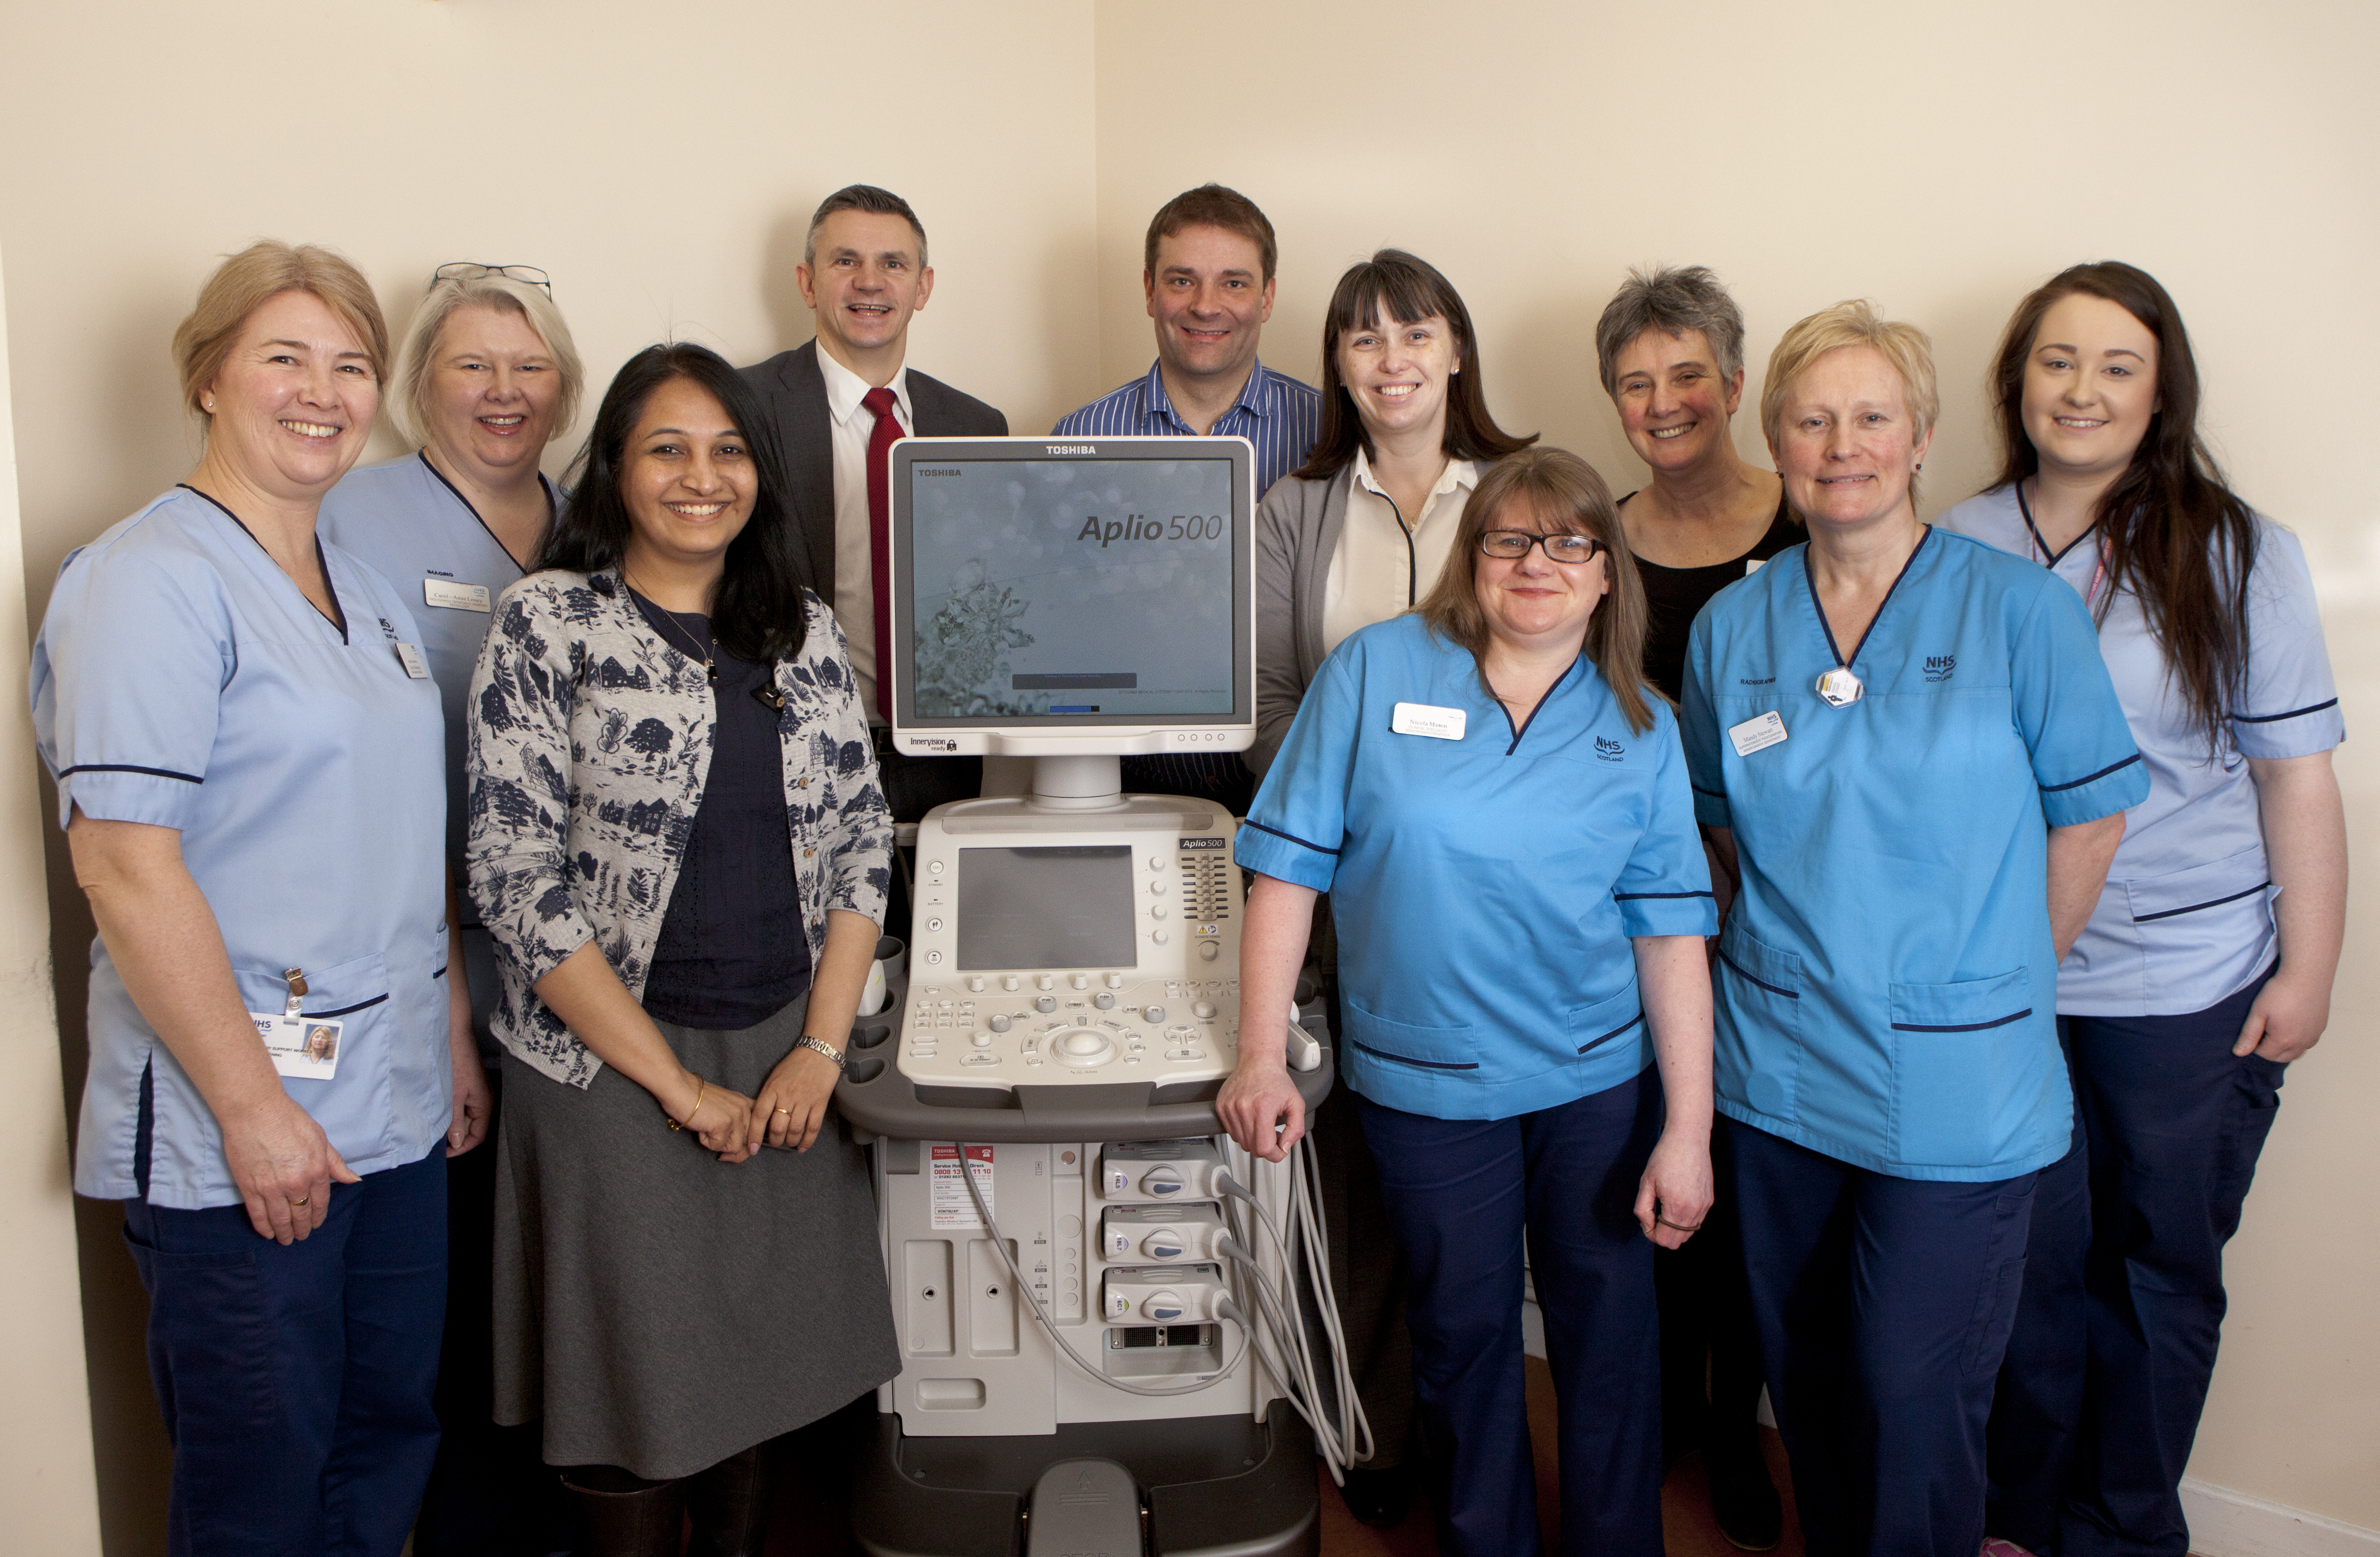 EDINBURGH WESTERN GENERAL HOSPITAL TAKES DELIVERY OF TWO TOSHIBA